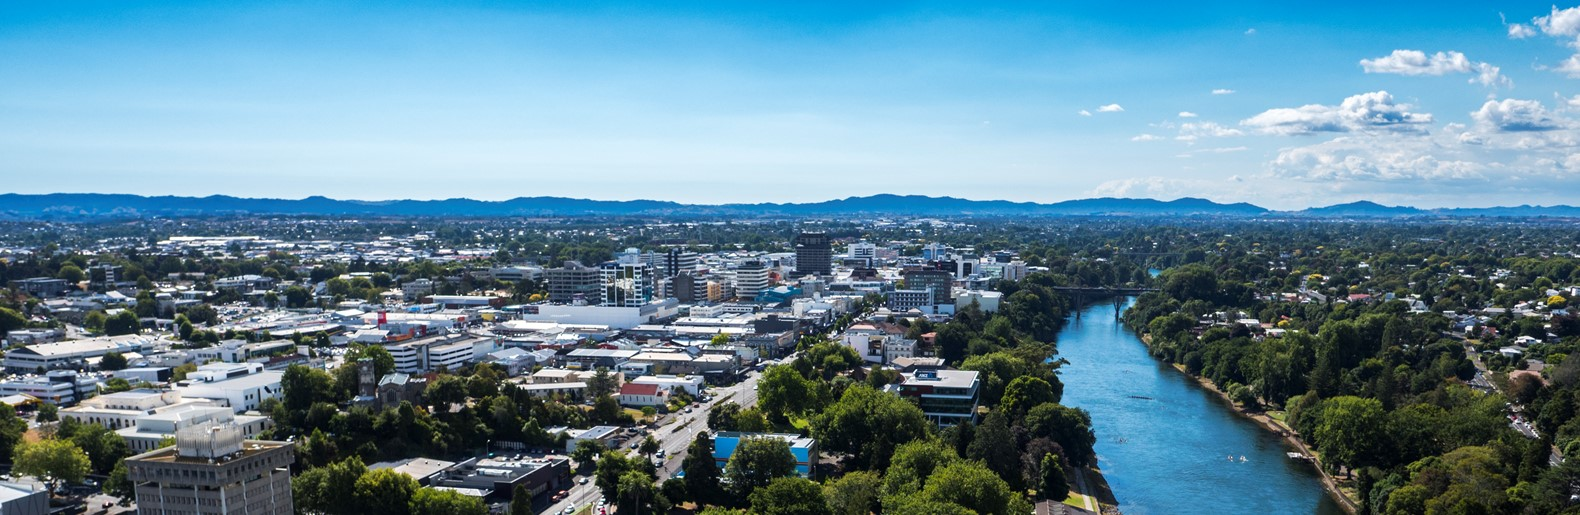 new zealand map cities with Hamiltonwaikato on Tonga Guide Backpackers besides Waikaia Bush as well Brazil Road Maps furthermore Gabriels Gully together with Wien Westbahnhof.